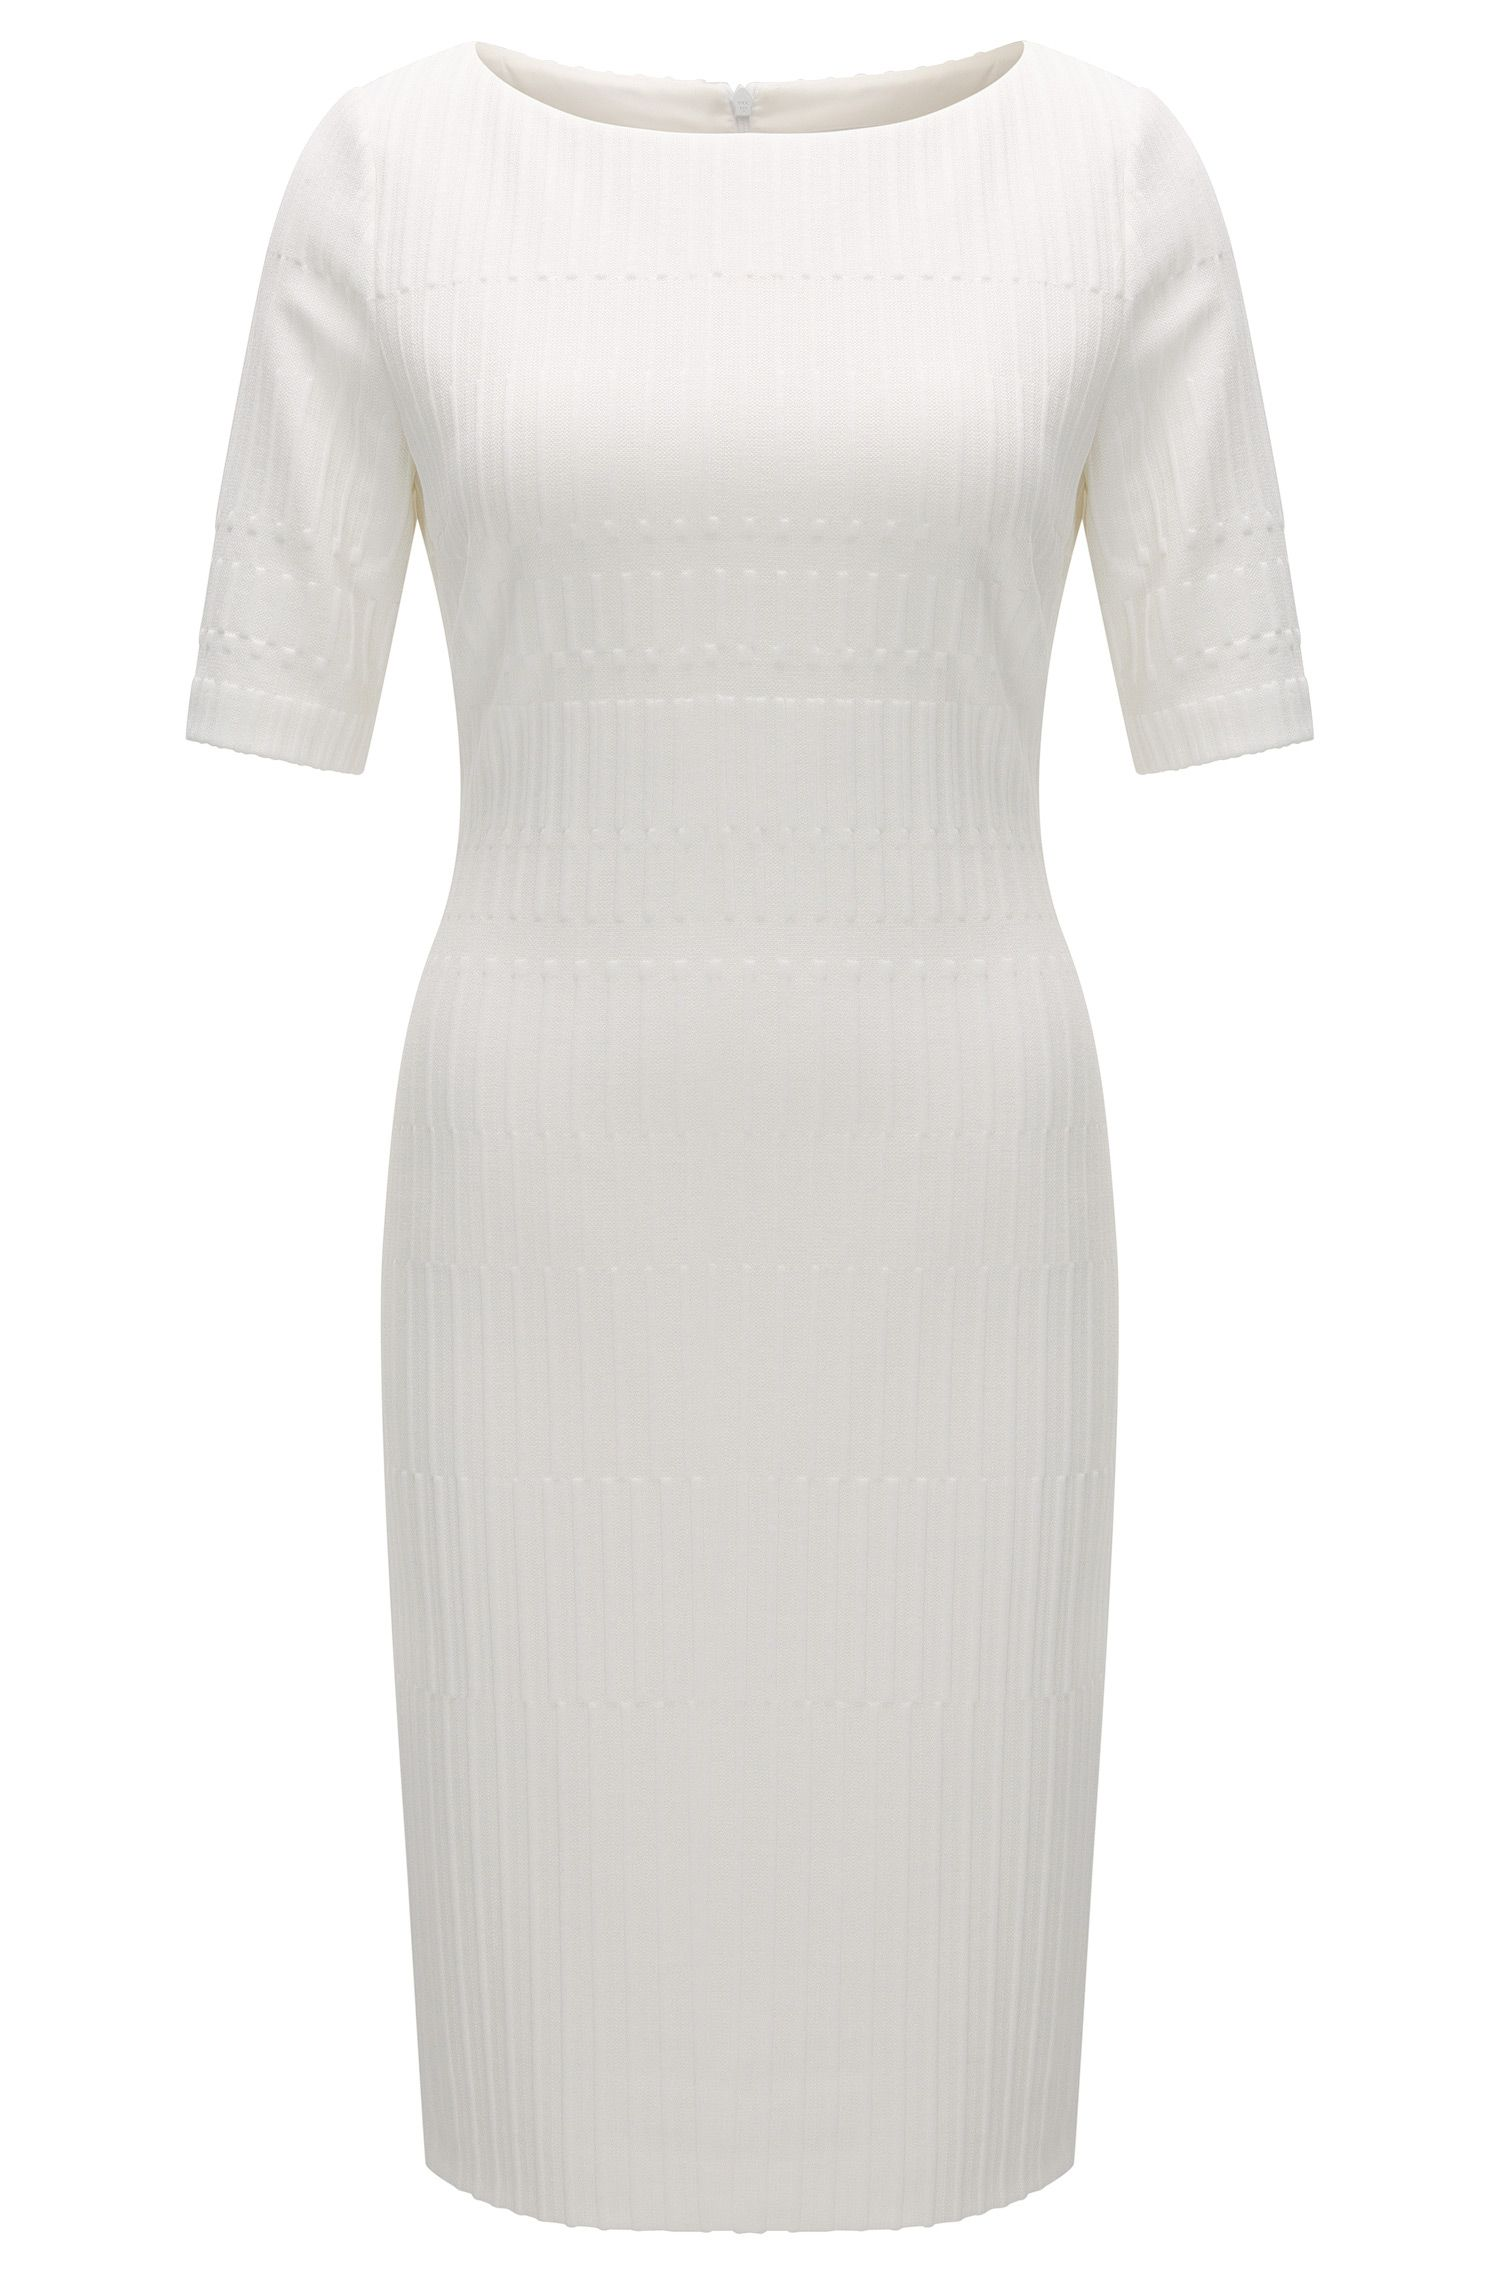 Slim-fit jersey dress in a textured jacquard